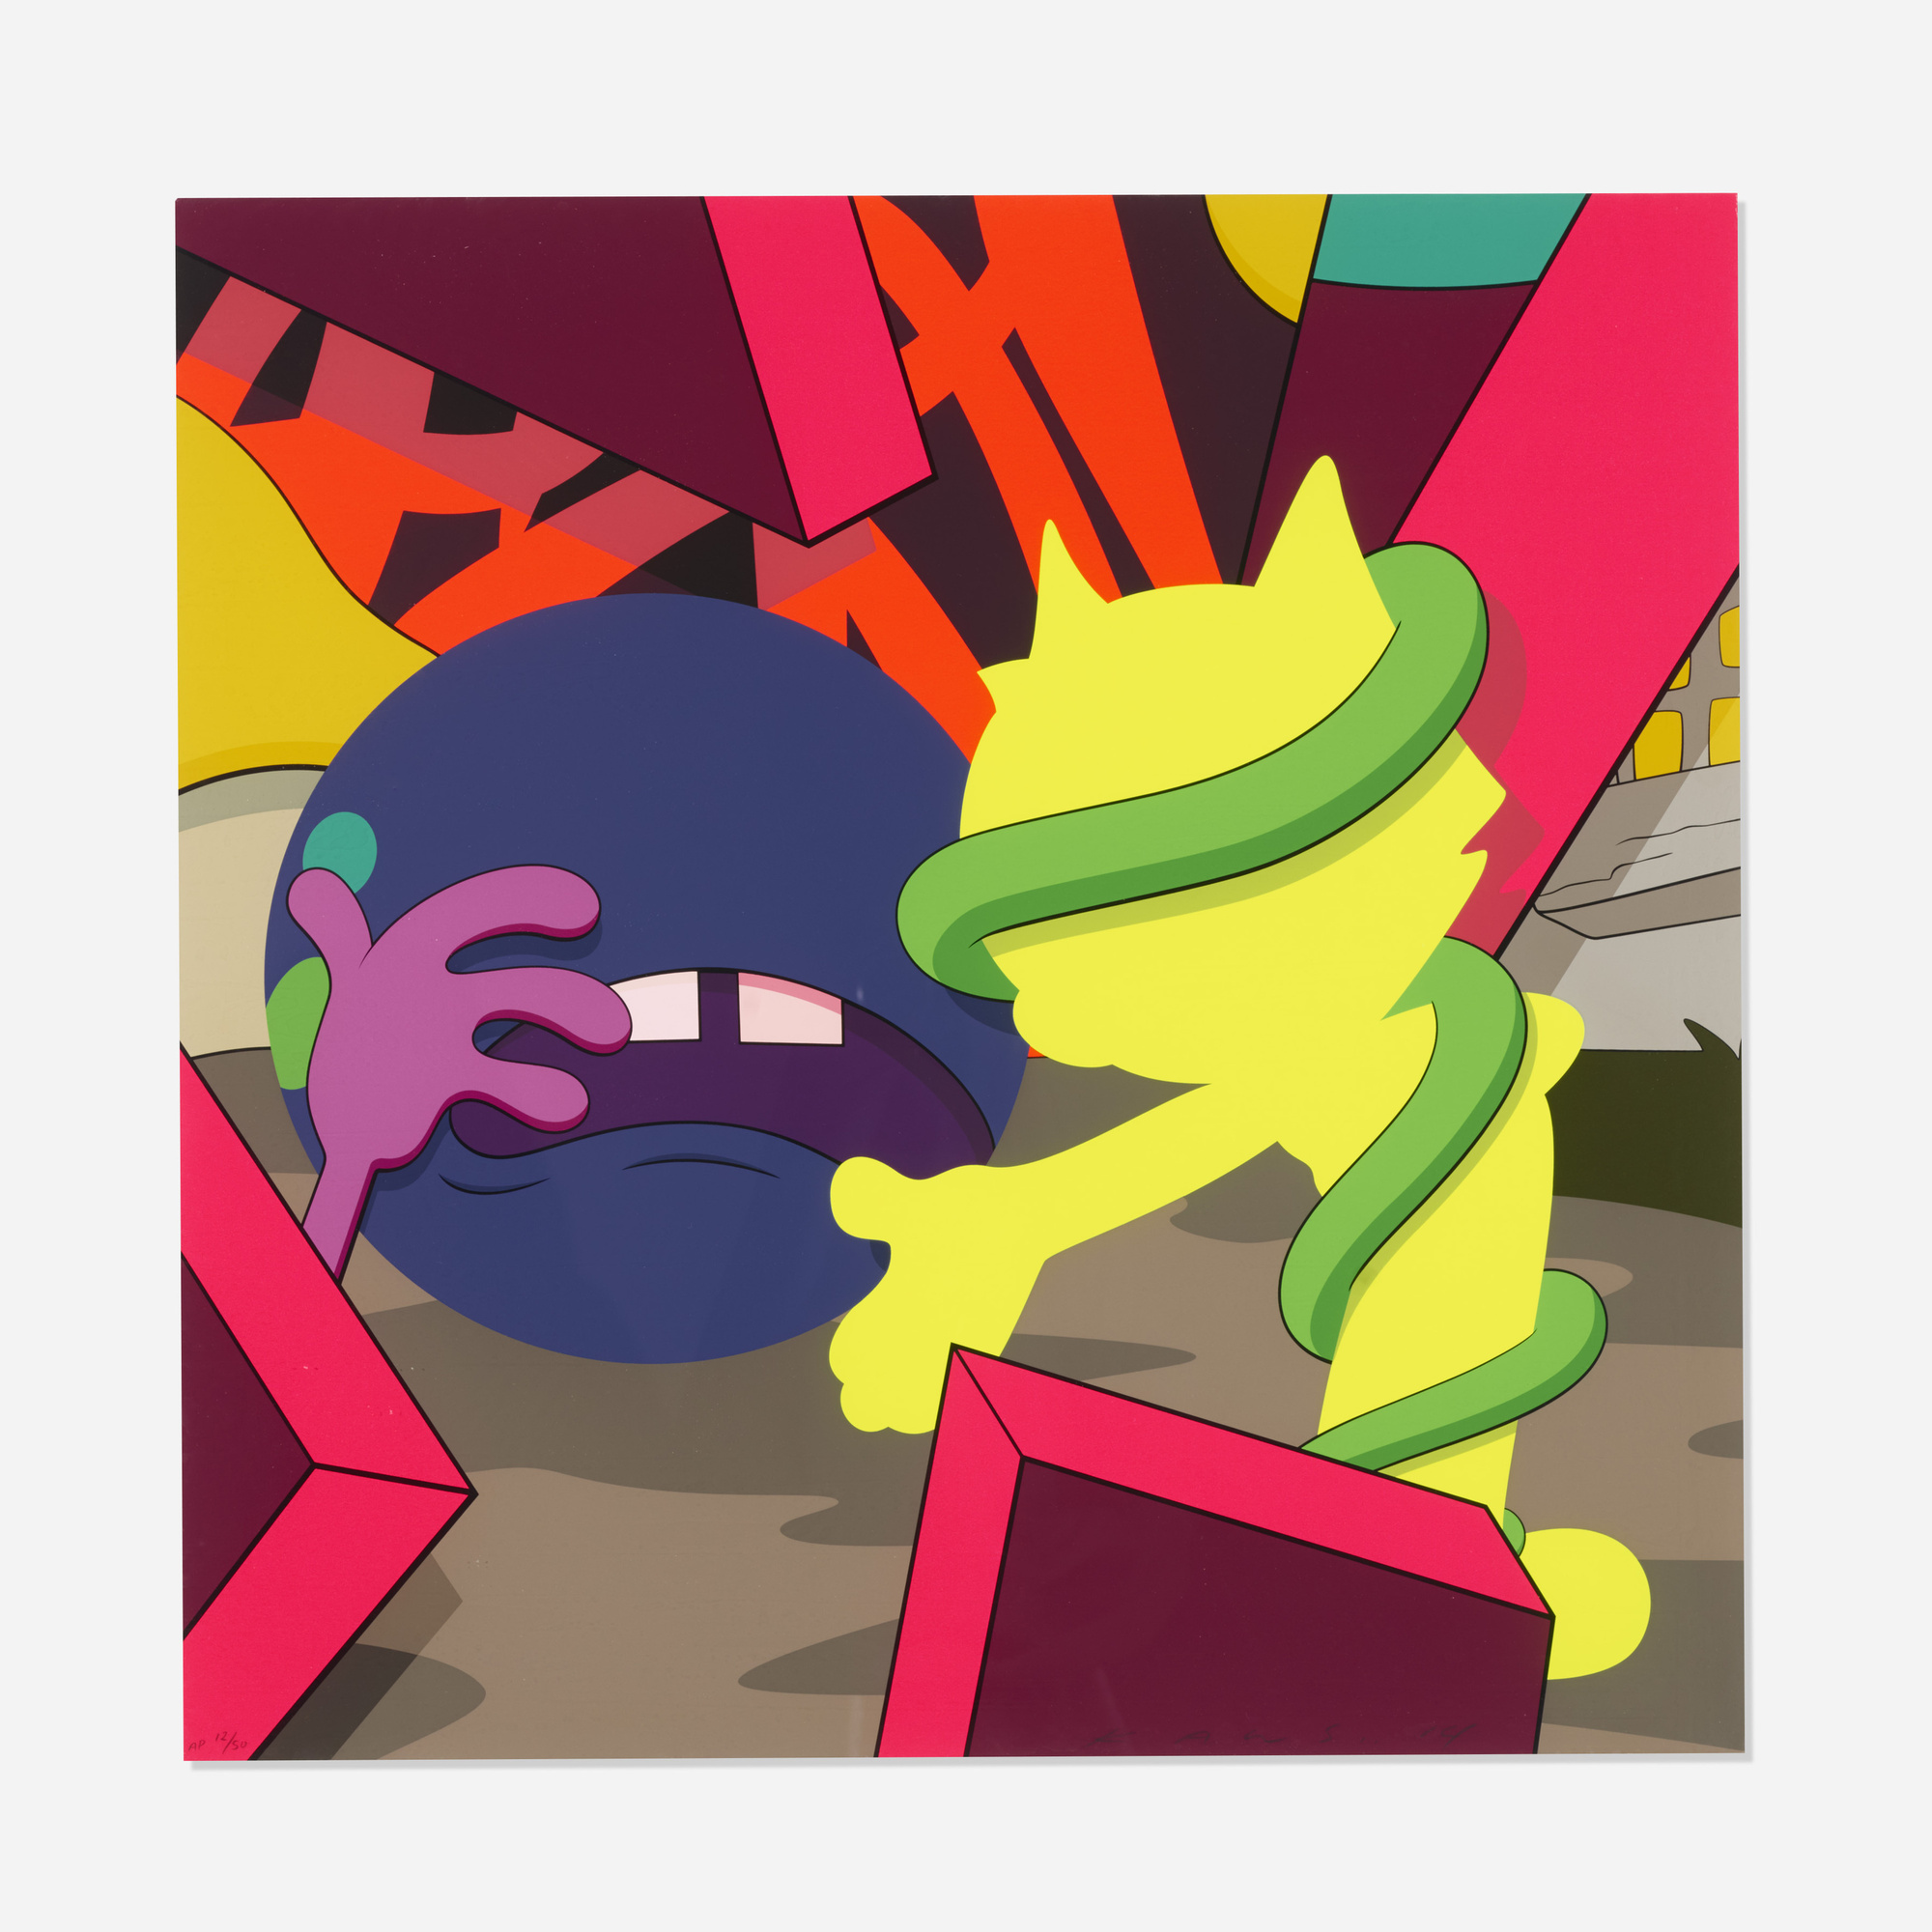 222: KAWS (Brian Donnelly) / Presenting the Past (1 of 2)